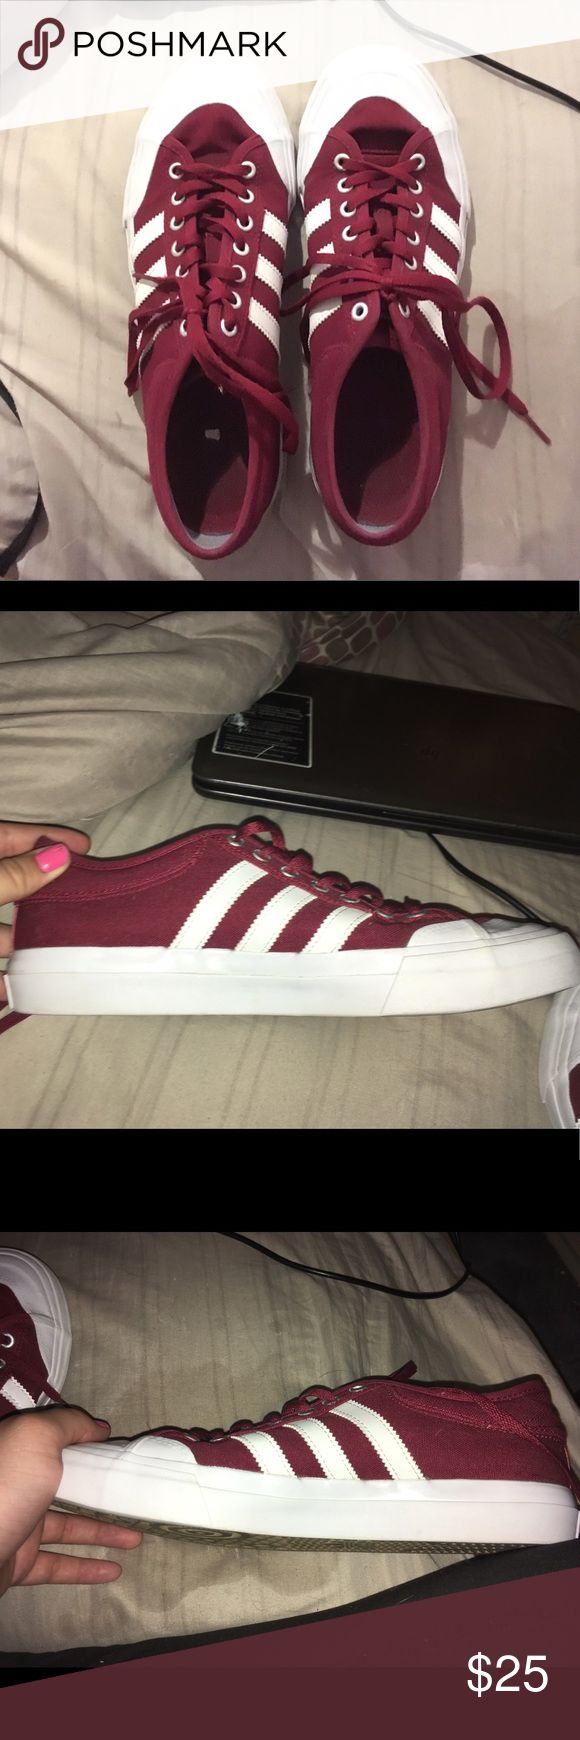 Adidas Shoes (UNISEX! LOOK IN DESCRIPTION) Size 8 in Men. Size 10 in Women. Unisex shoes. Maroon color. Worn once. adidas Shoes Athletic Shoes